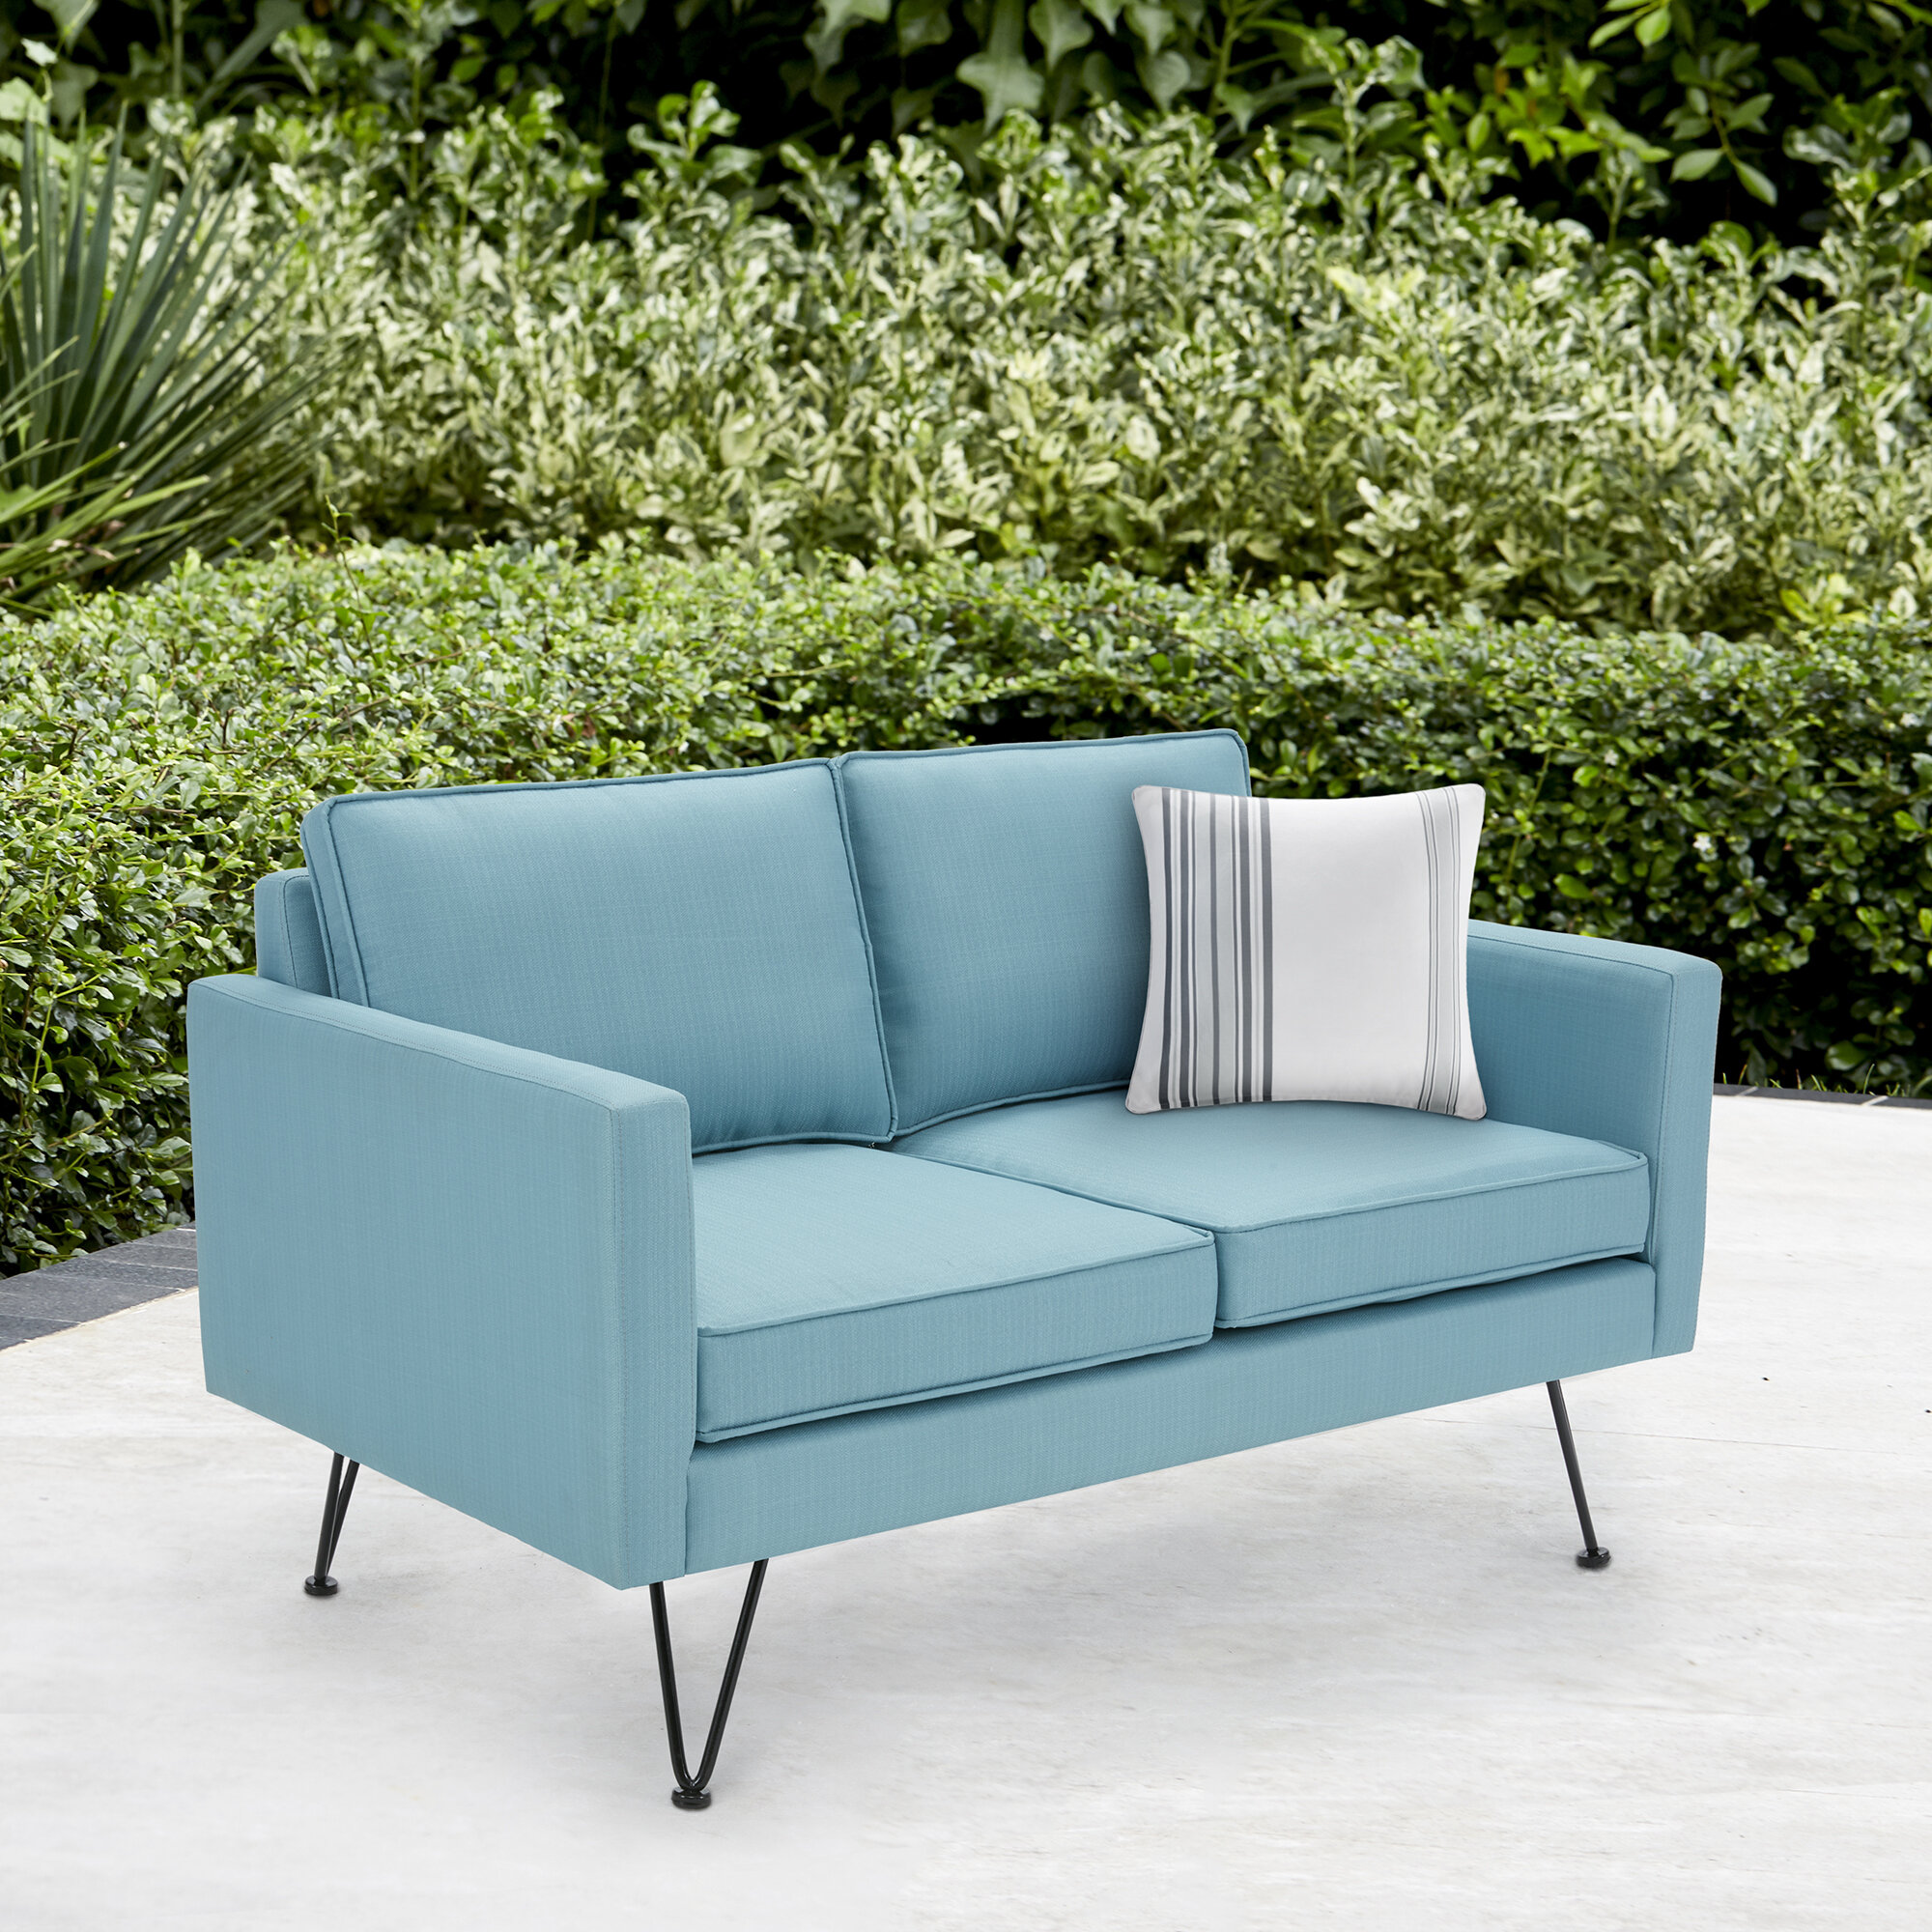 free today shipping garden and steel glider outdoor lizkona weather poundex loveseat overstock home product all fabric